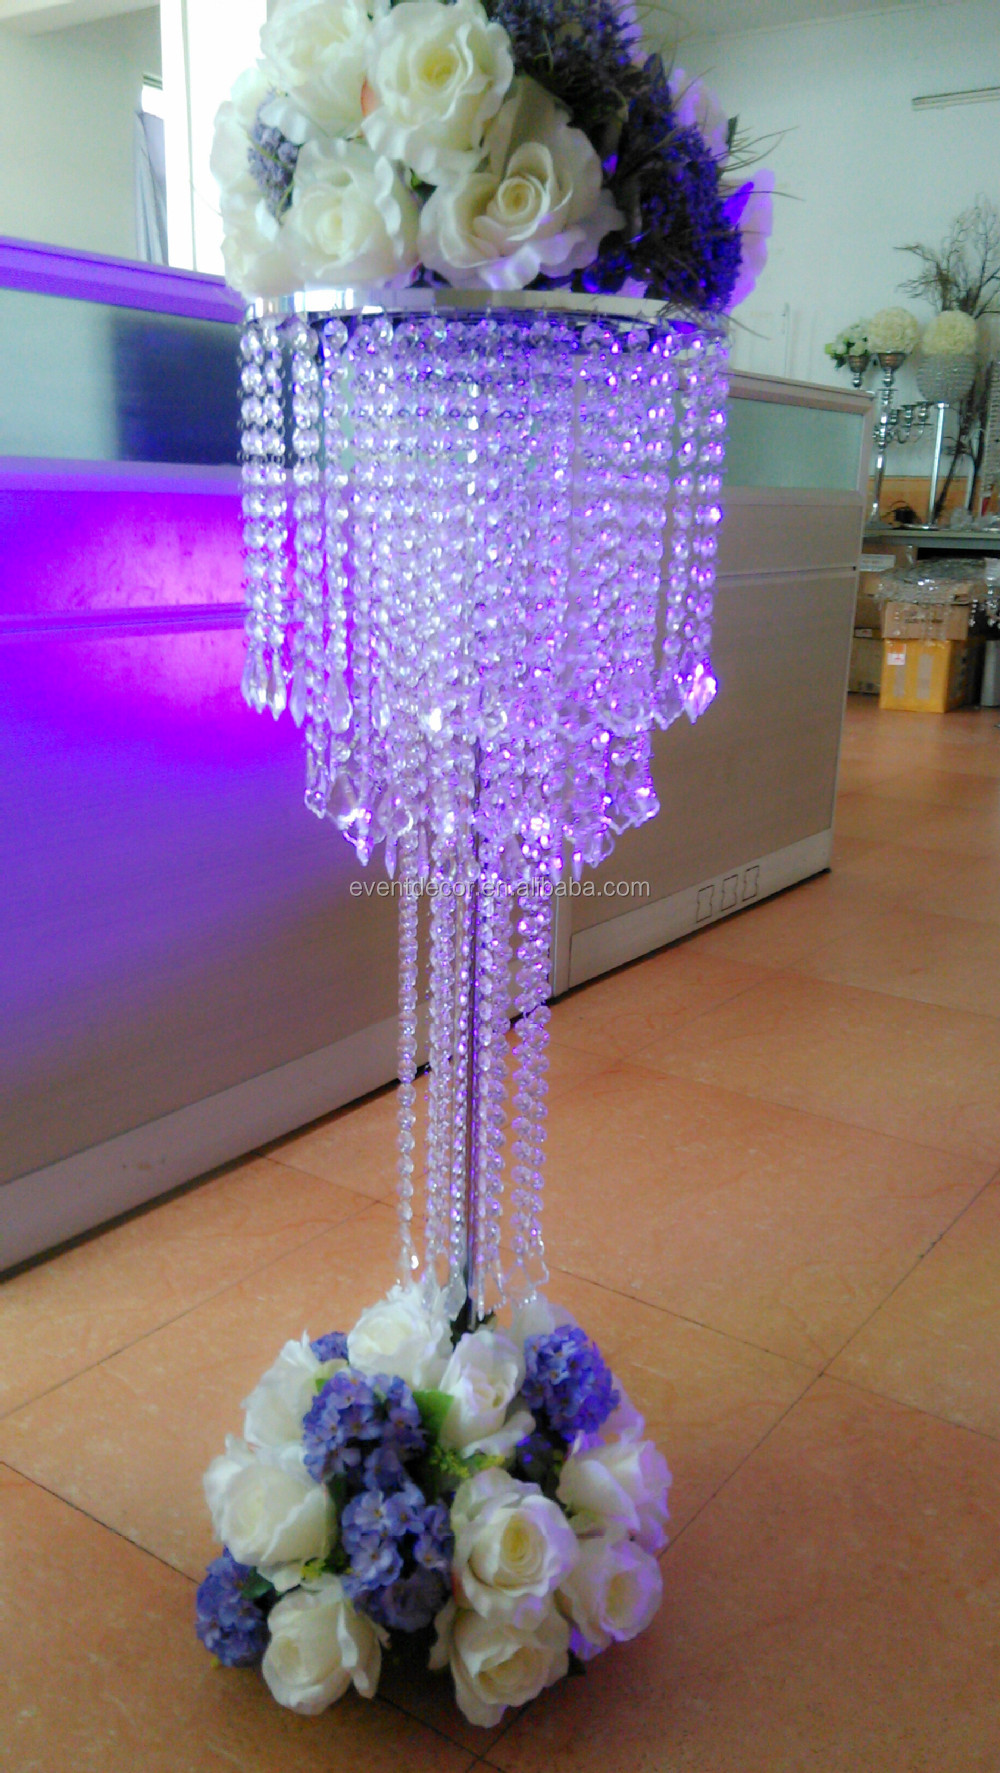 Modern acrylic wedding chandelier centerpieces for